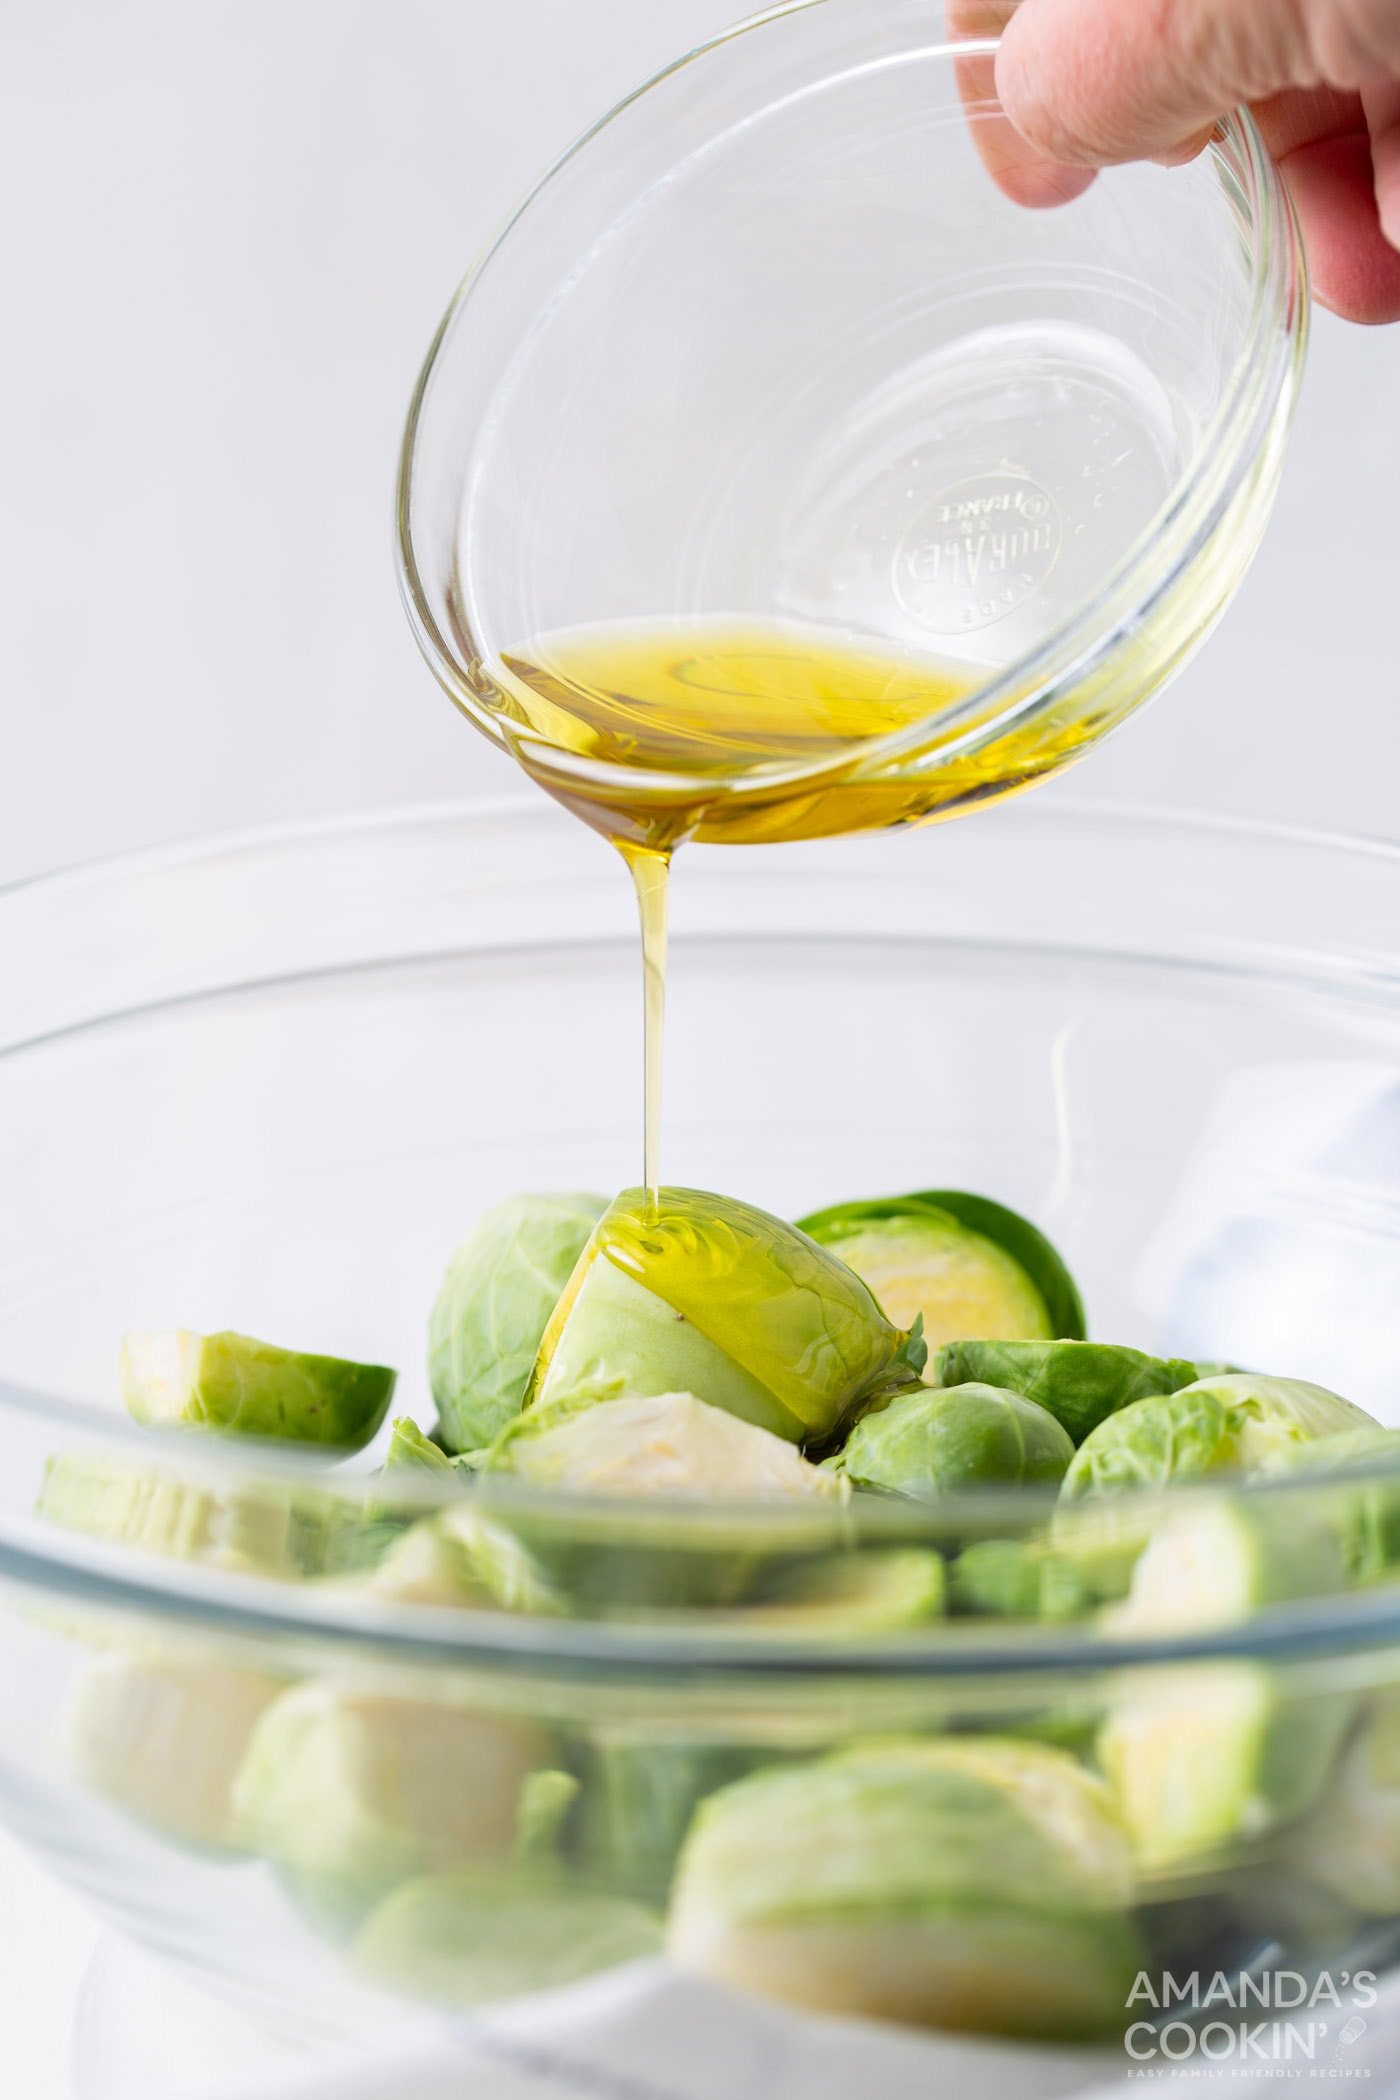 pouring olive oil onto brussels sprouts